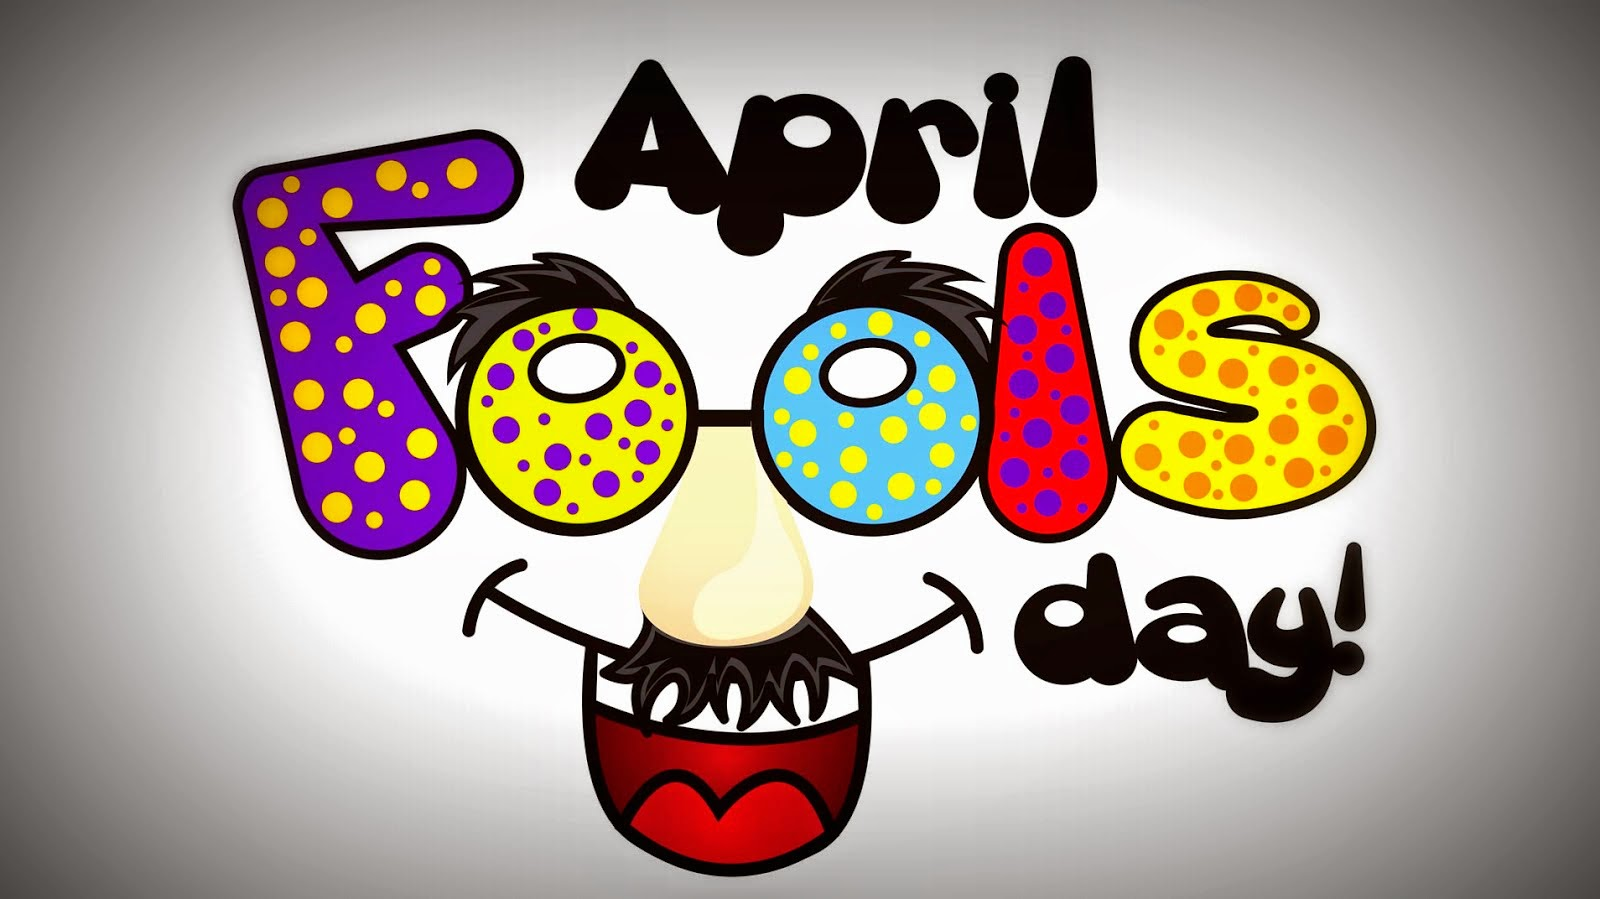 April Fool\u002639;s Day Wallpapers  Download Free High Definition Desktop Backgrounds